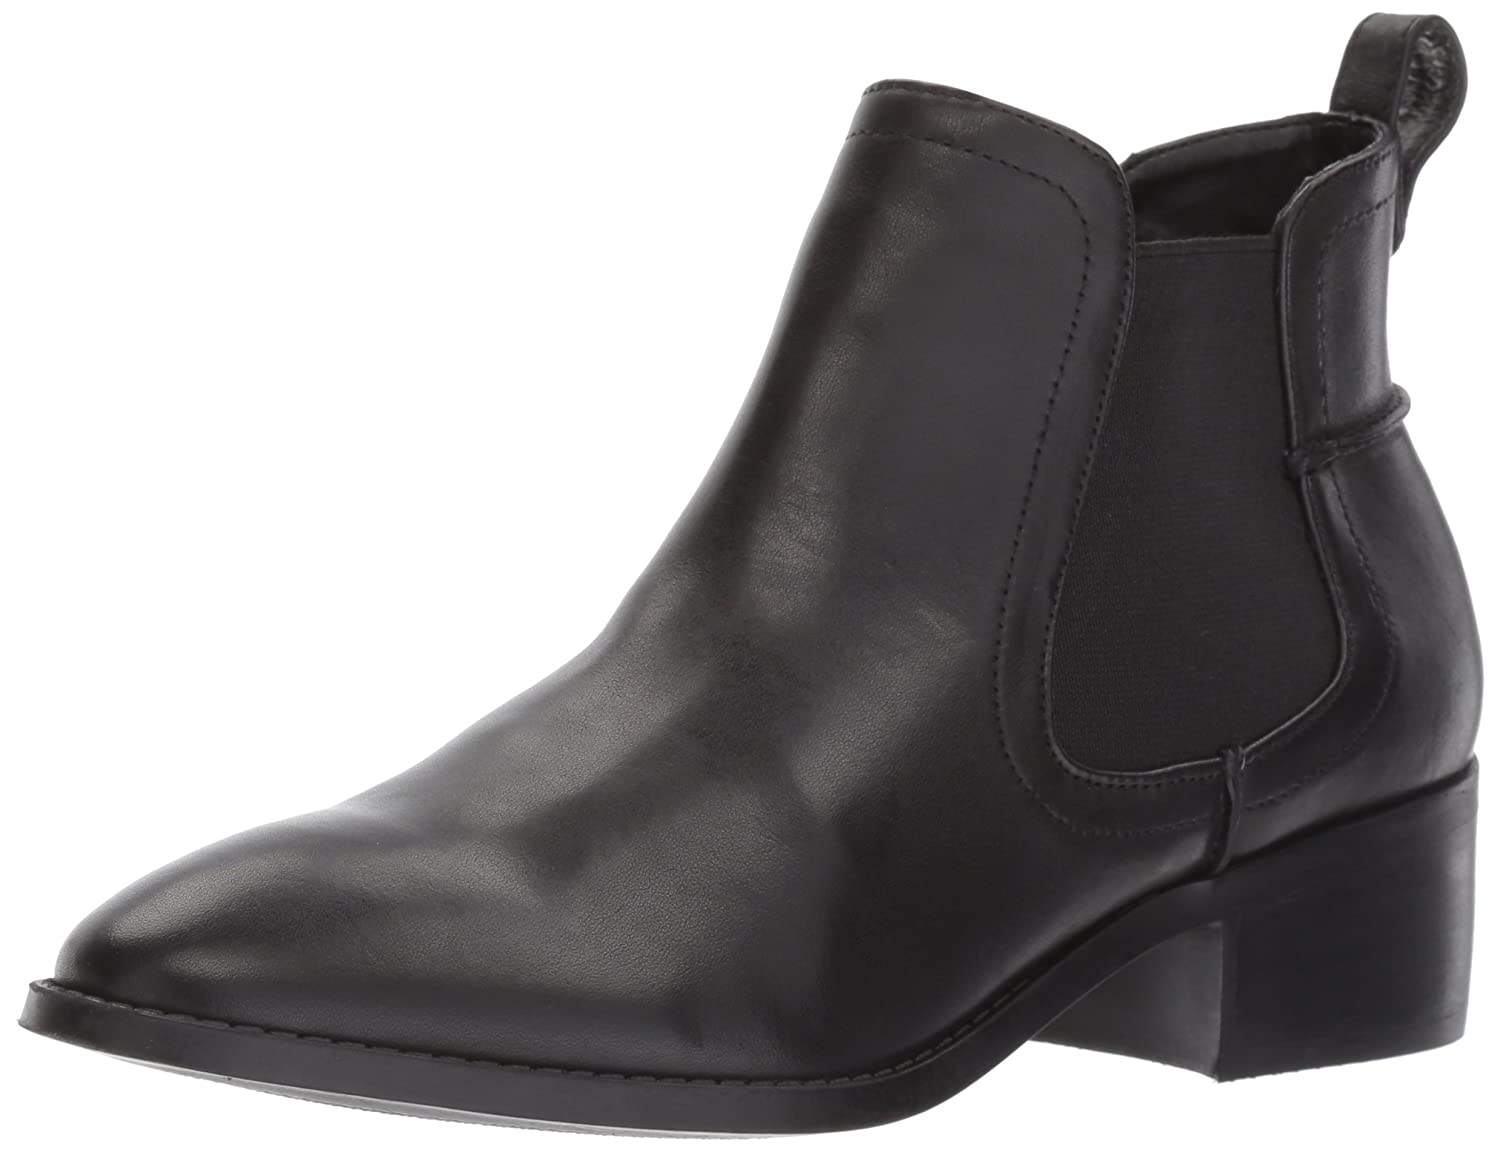 3402f7b1b8c7 Steve Madden Women's Dicey Ankle Bootie, Black Leather, 5.5 M US:  Amazon.ca: Shoes & Handbags